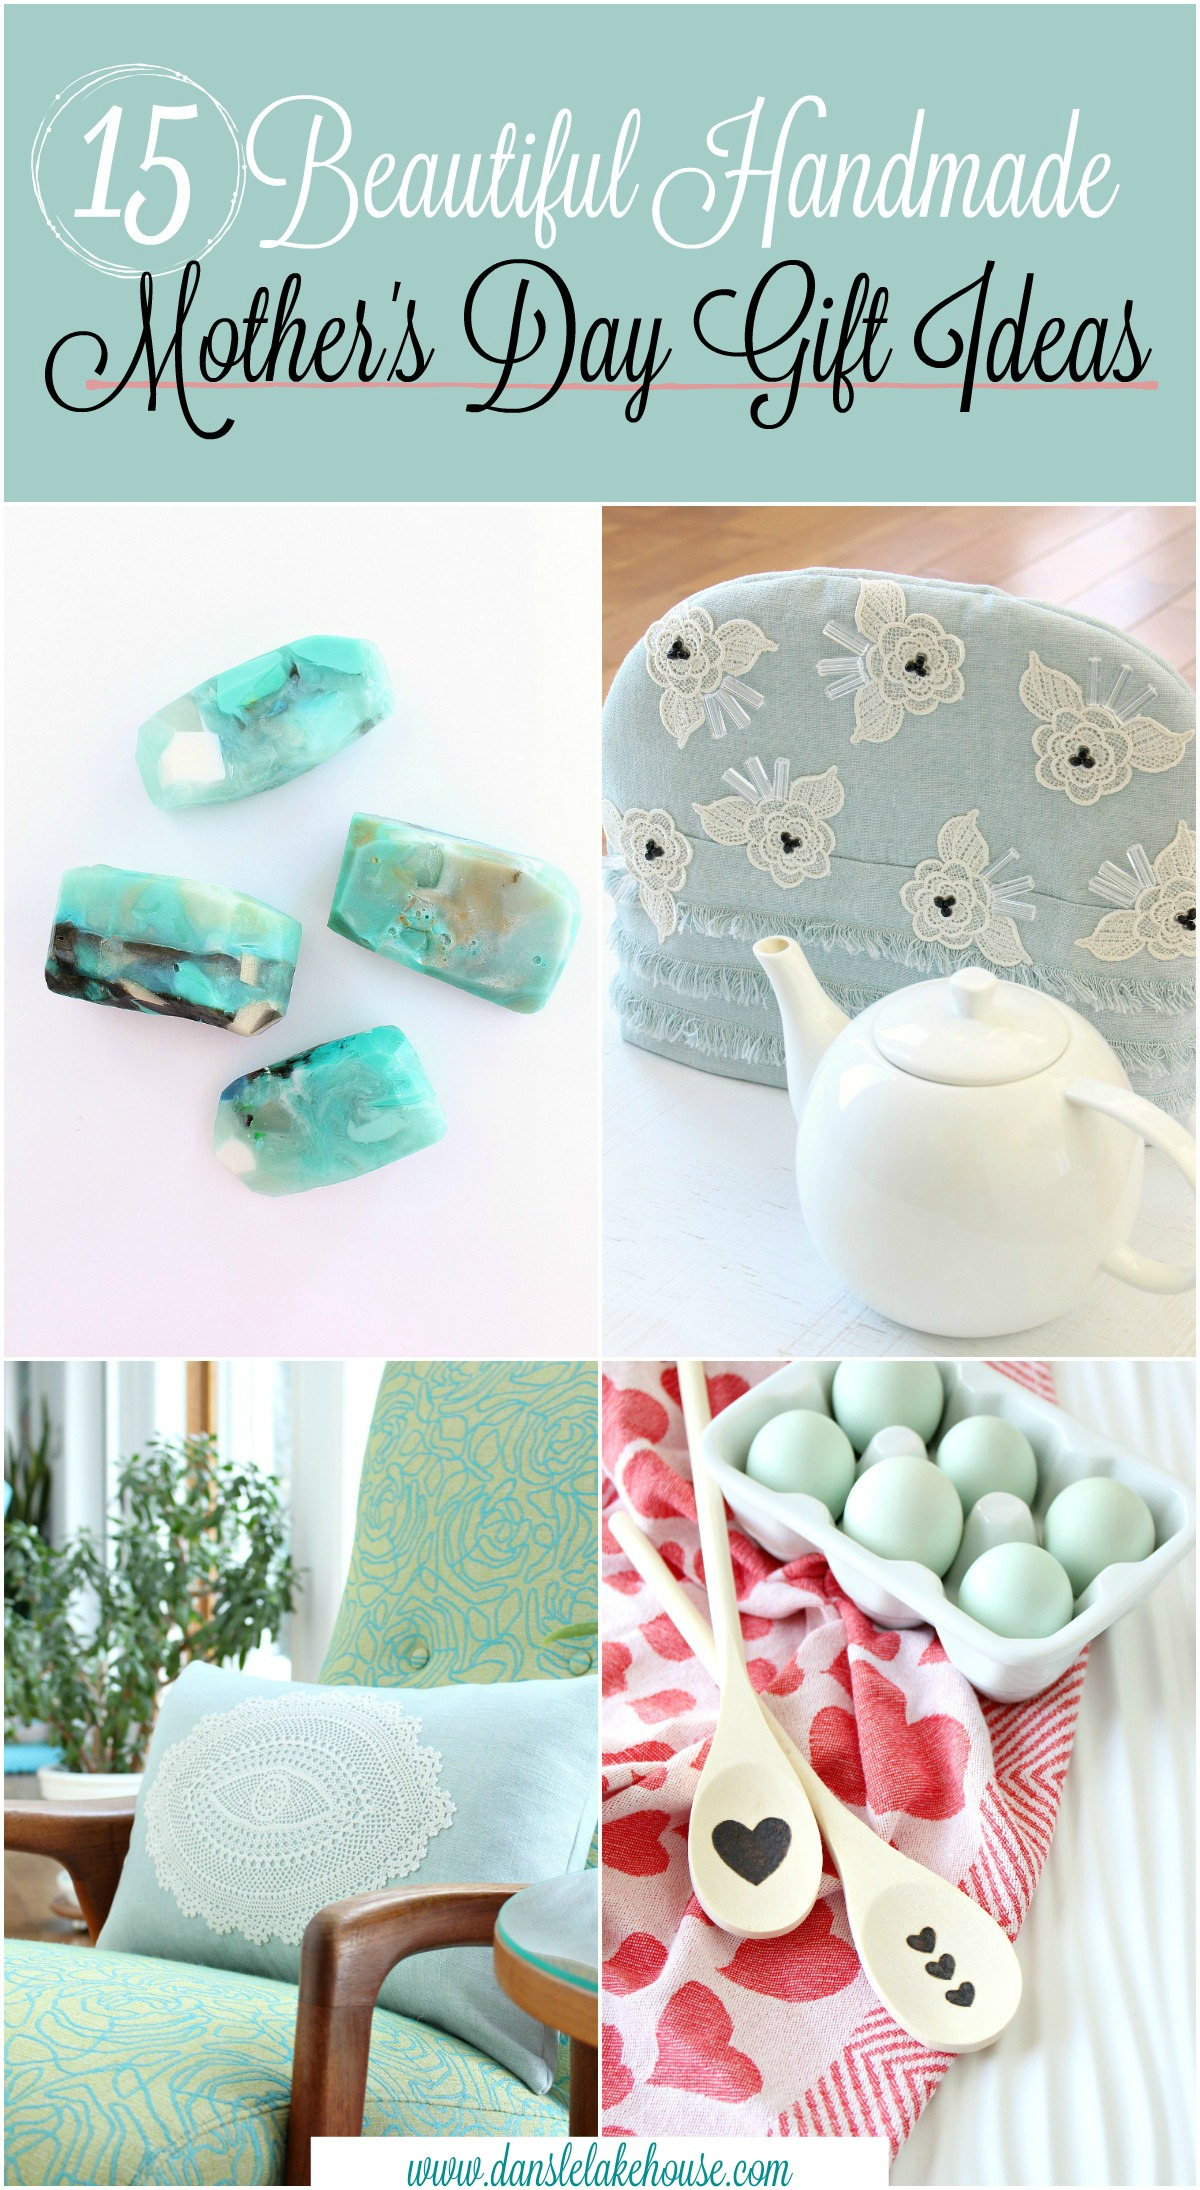 15 Beautiful and Handmade Mother's Day Gift Ideas